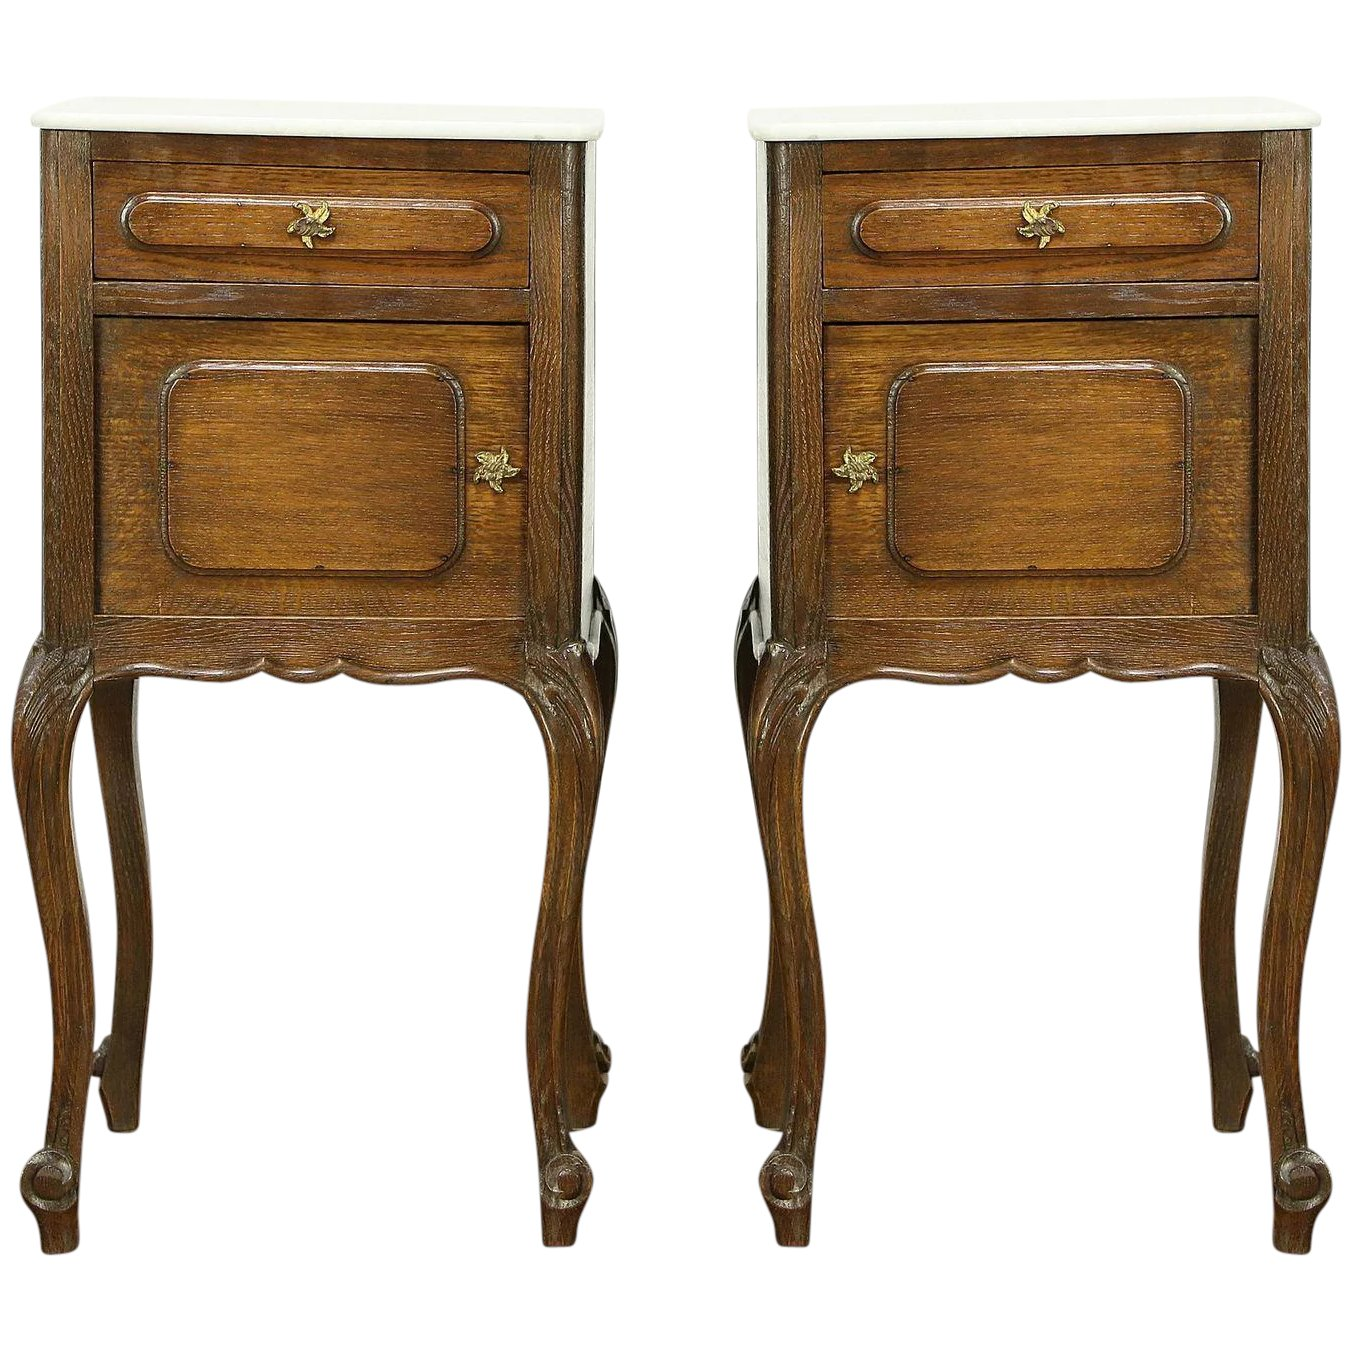 Country French Antique Oak Nightstands